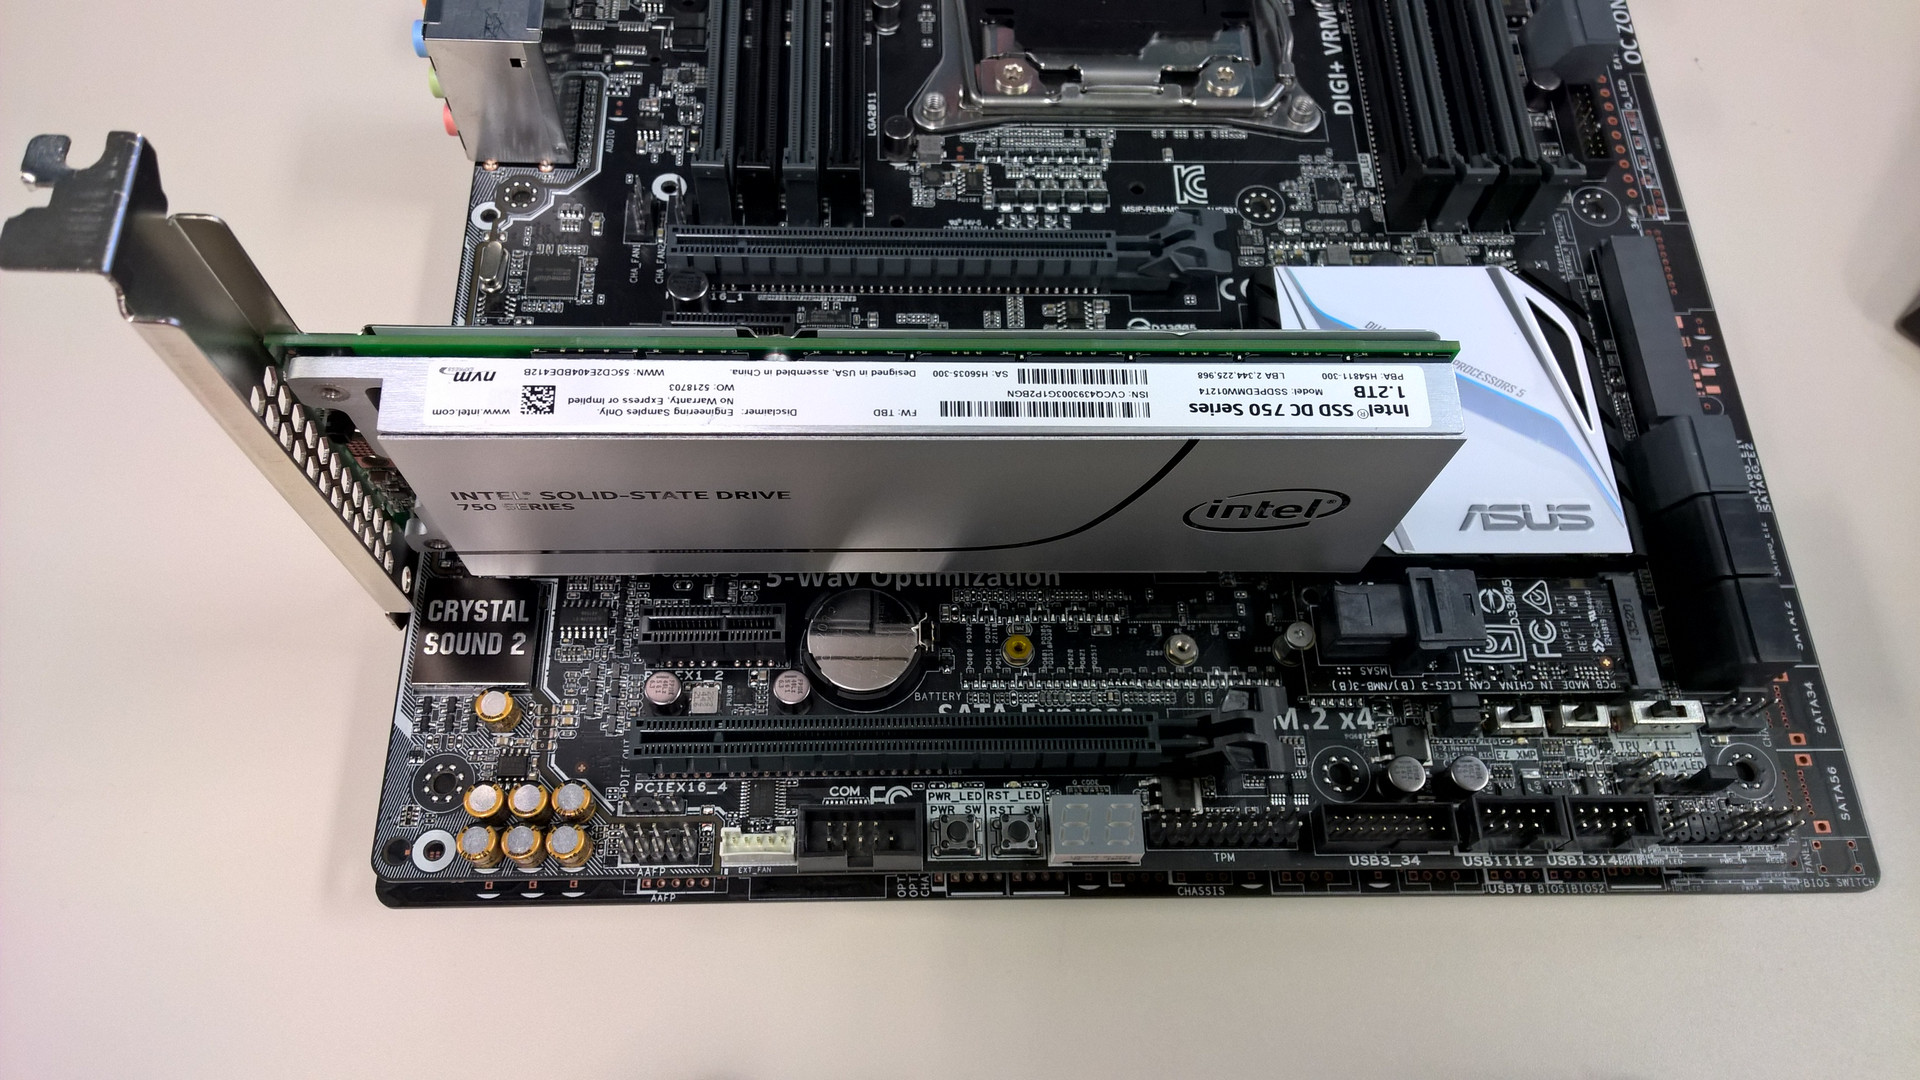 ASUS Z97 & X99 Motherboards & Intel 750 series NVMe SSDs